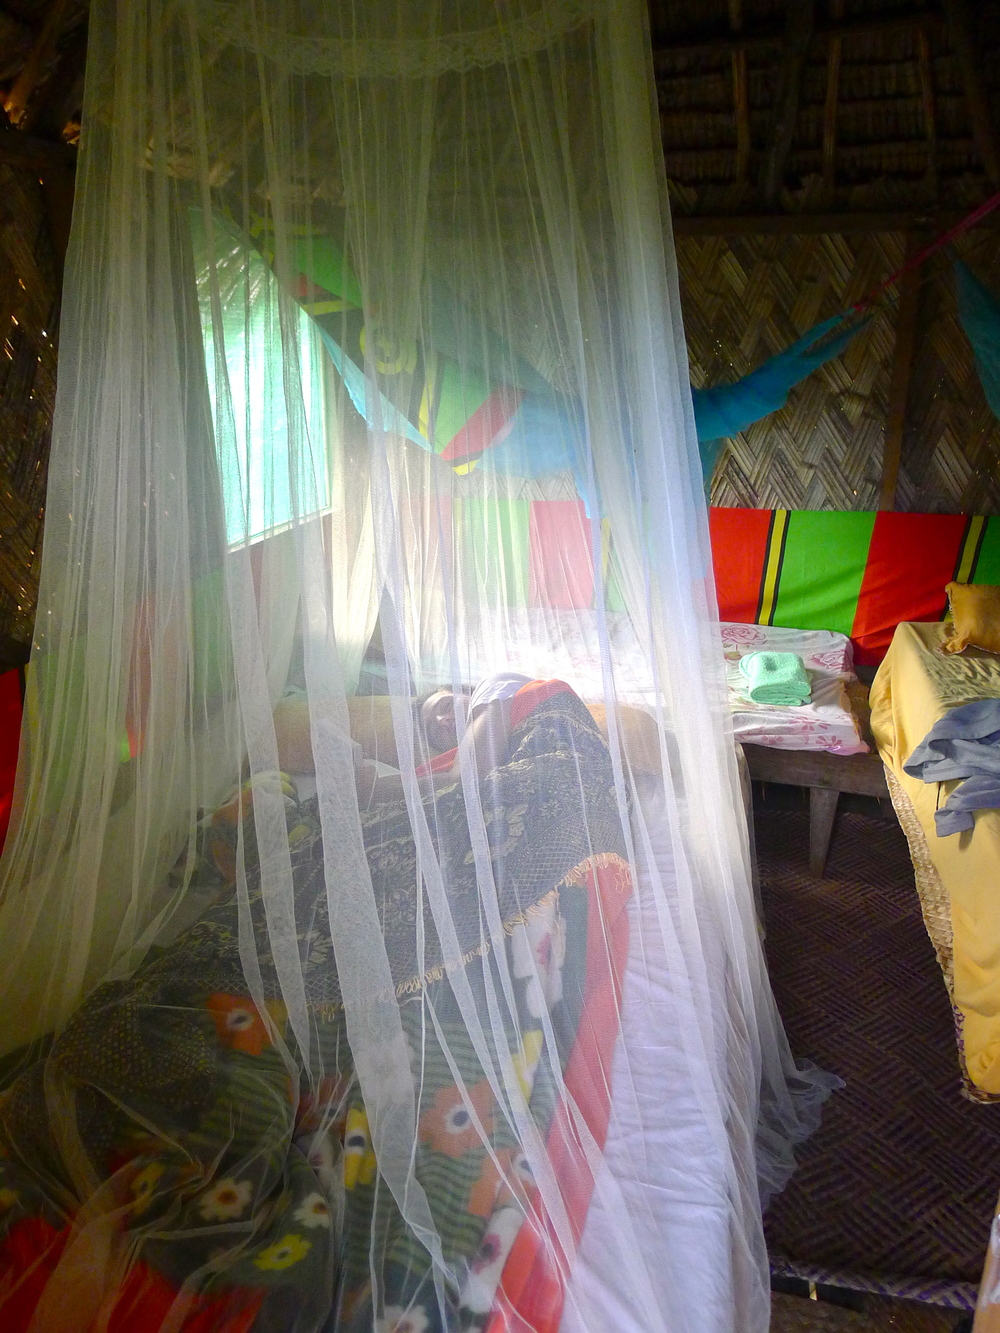 INSIDE THE TREEHOUSE HUT. MOSQUITO NETS AND ALL.